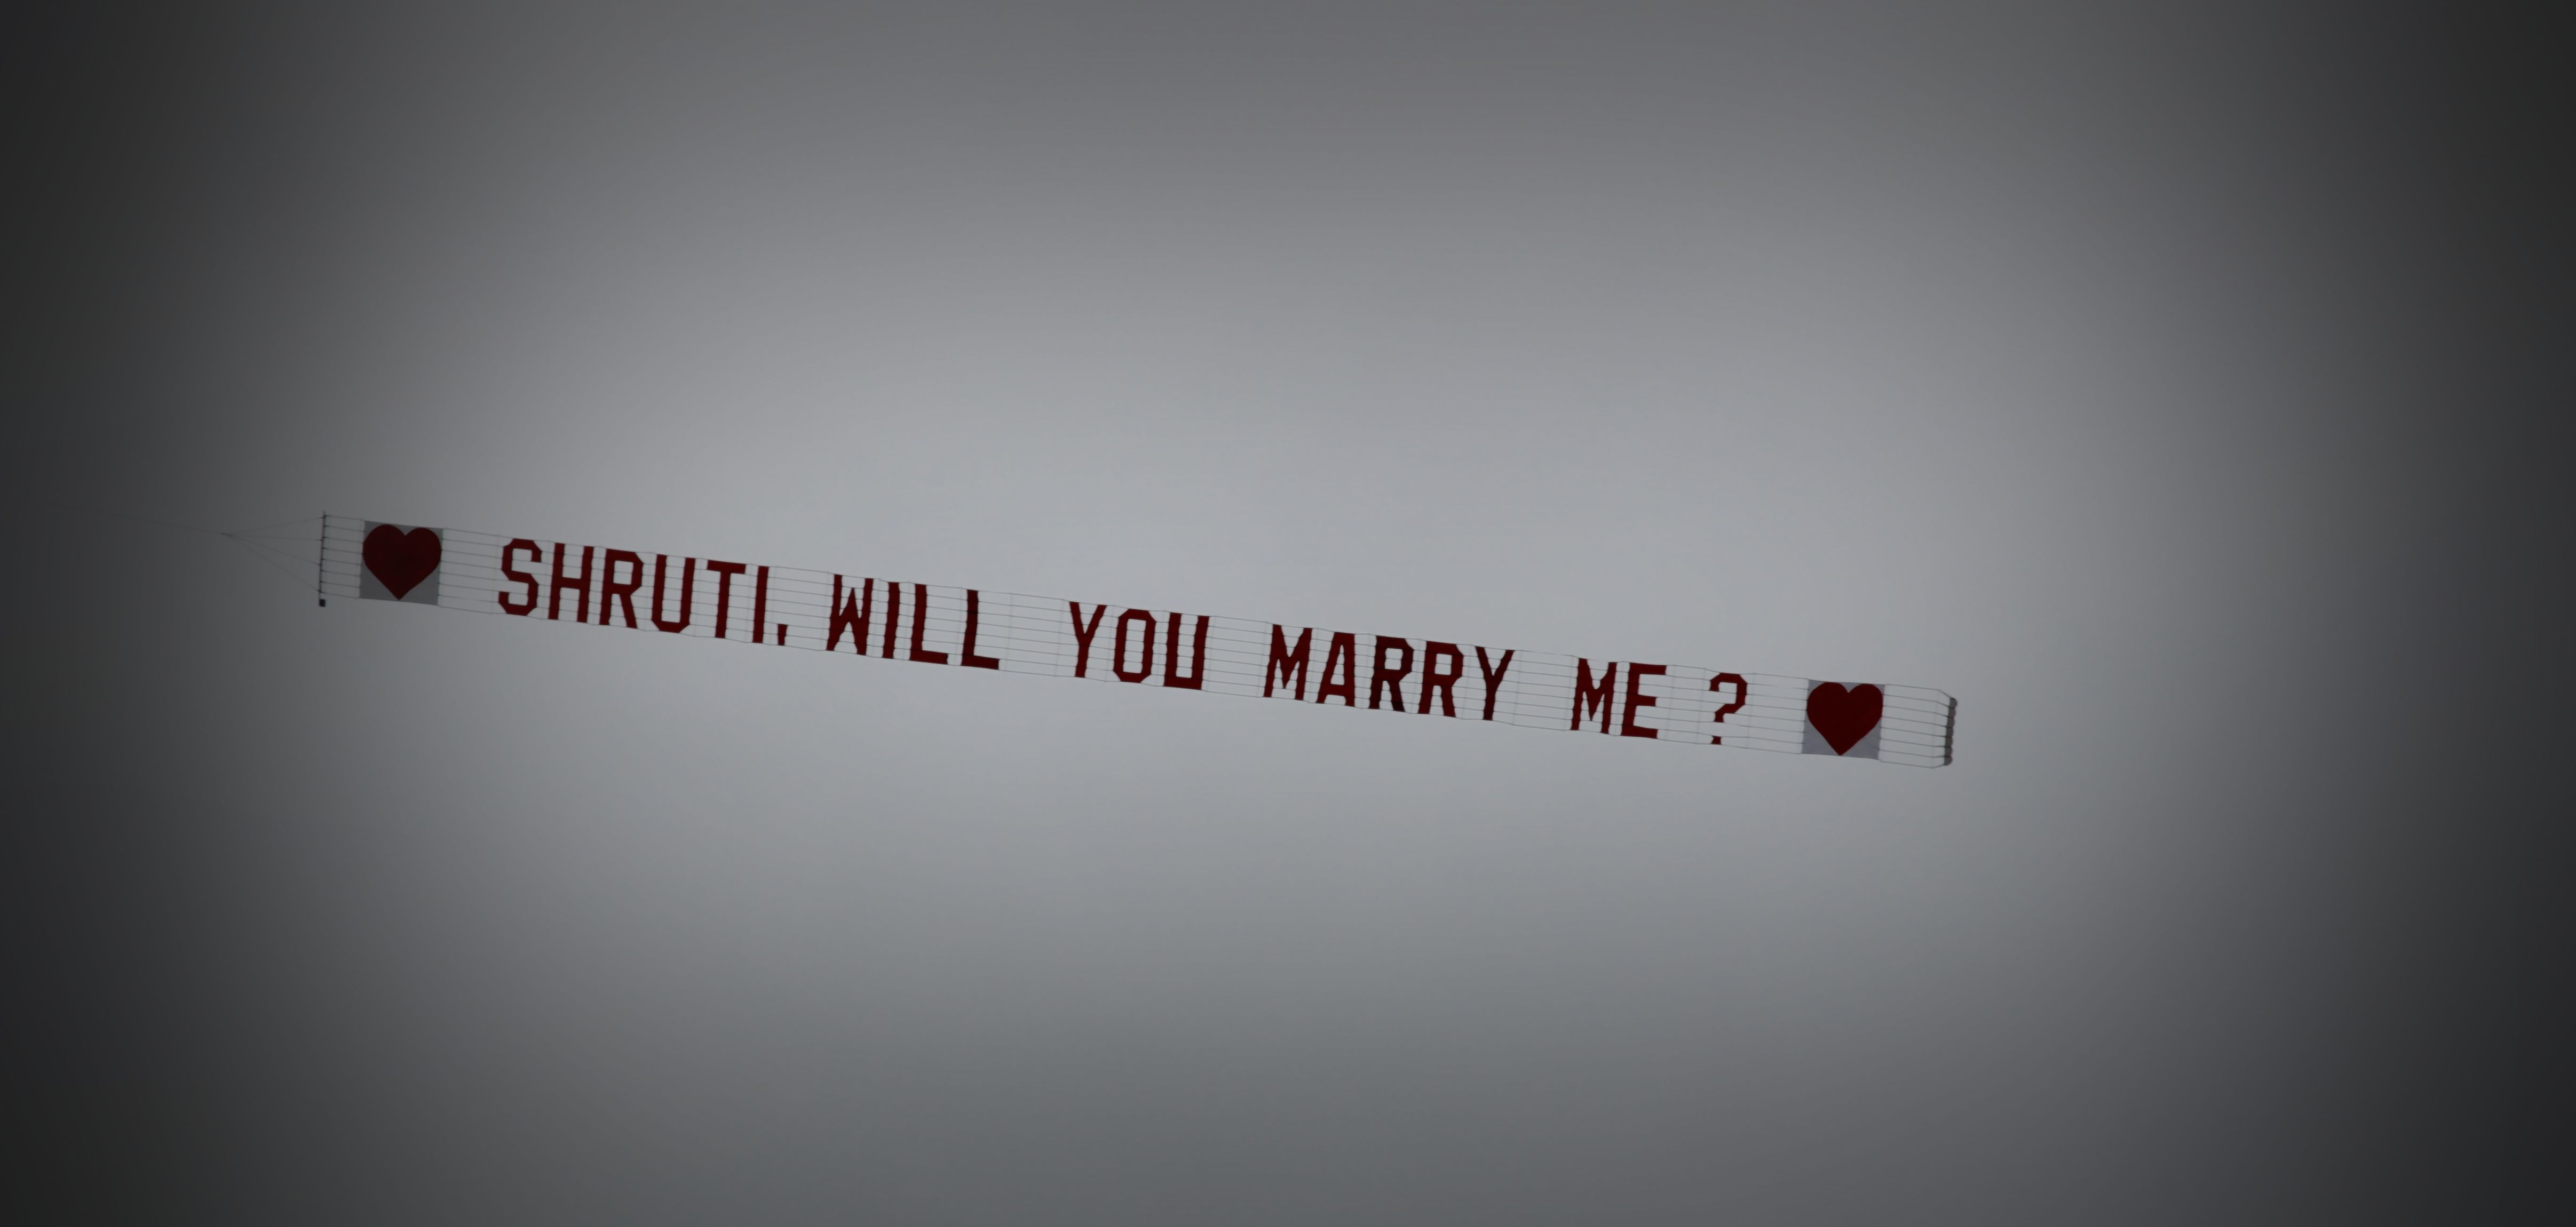 Ariel will you marry me banner